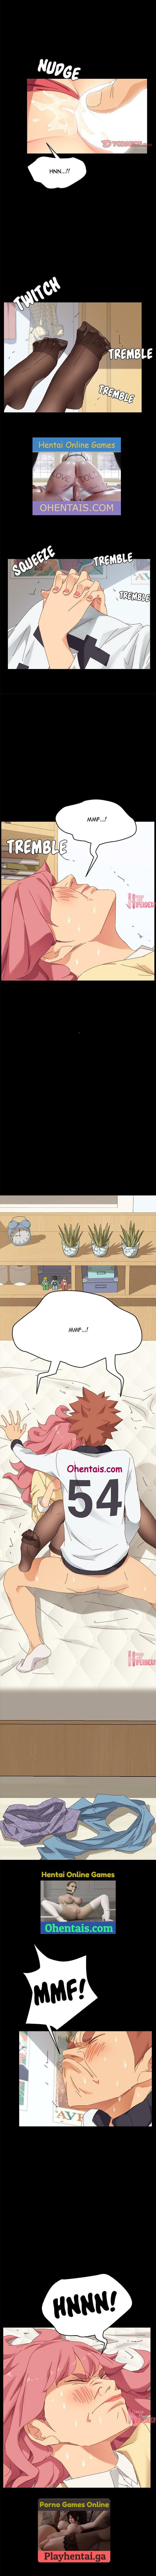 The Perfect Roommates Ch. 9 8